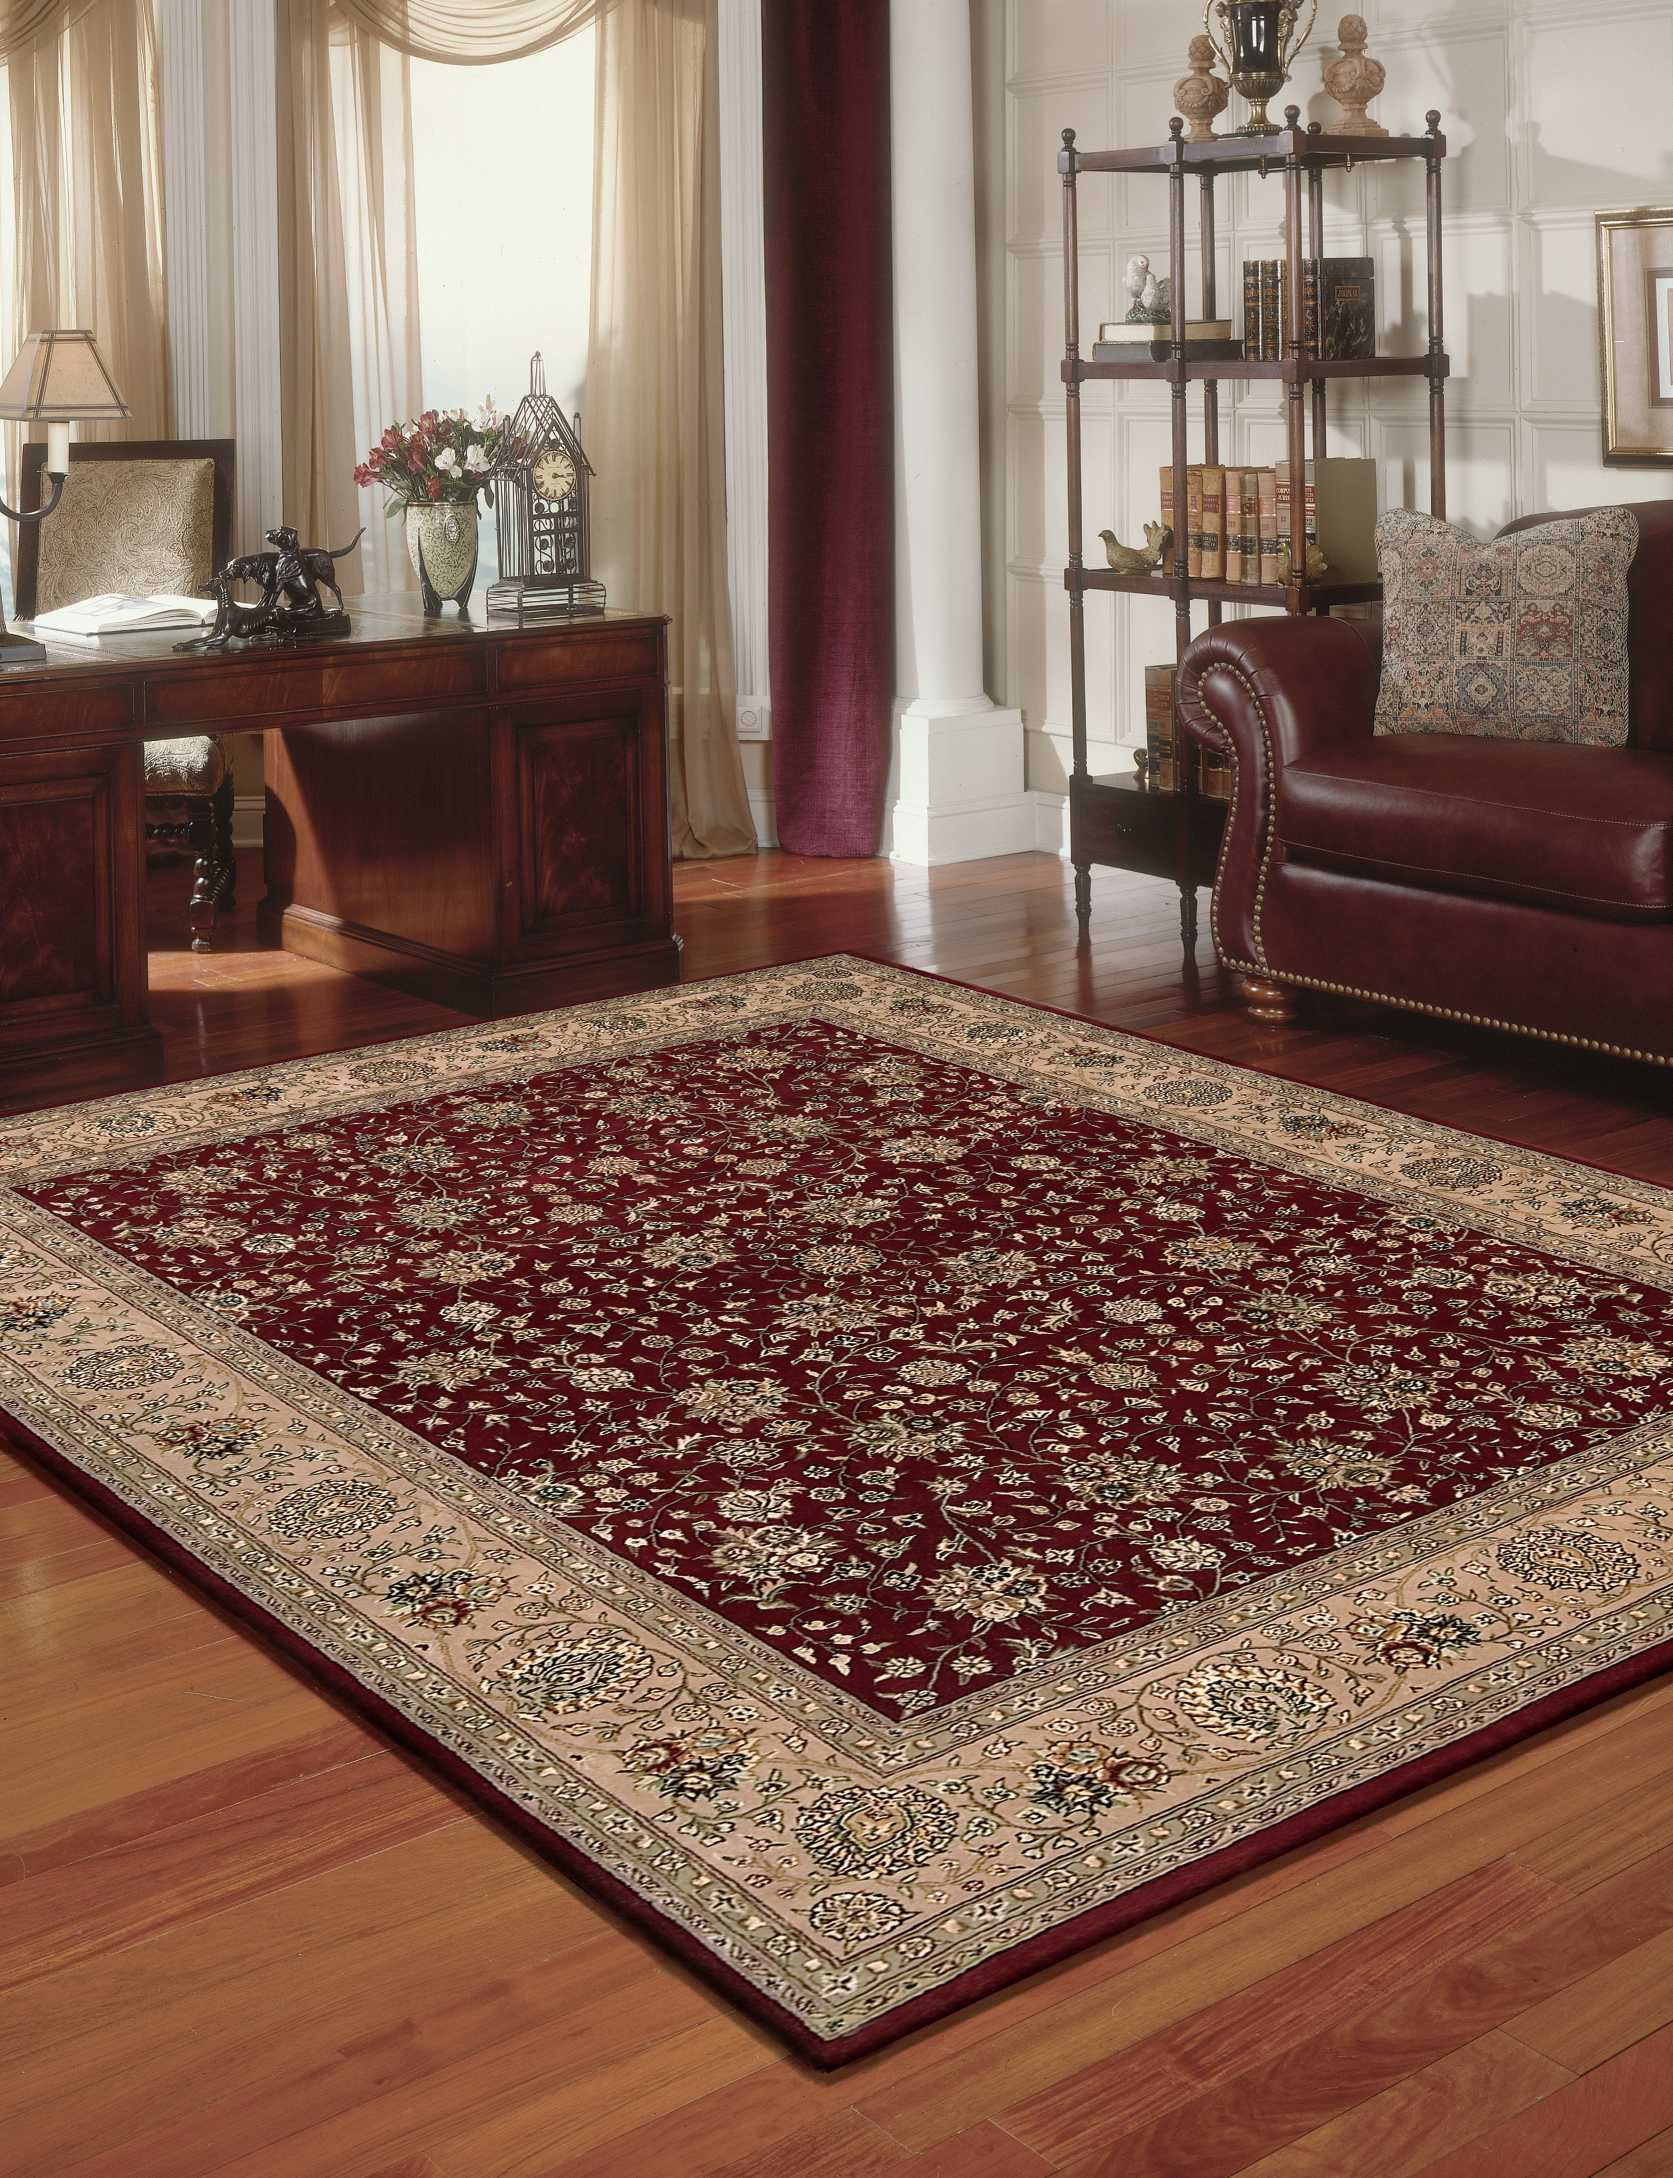 Nourison 2000 2107 Burgundy 8' Runner  Area Rug